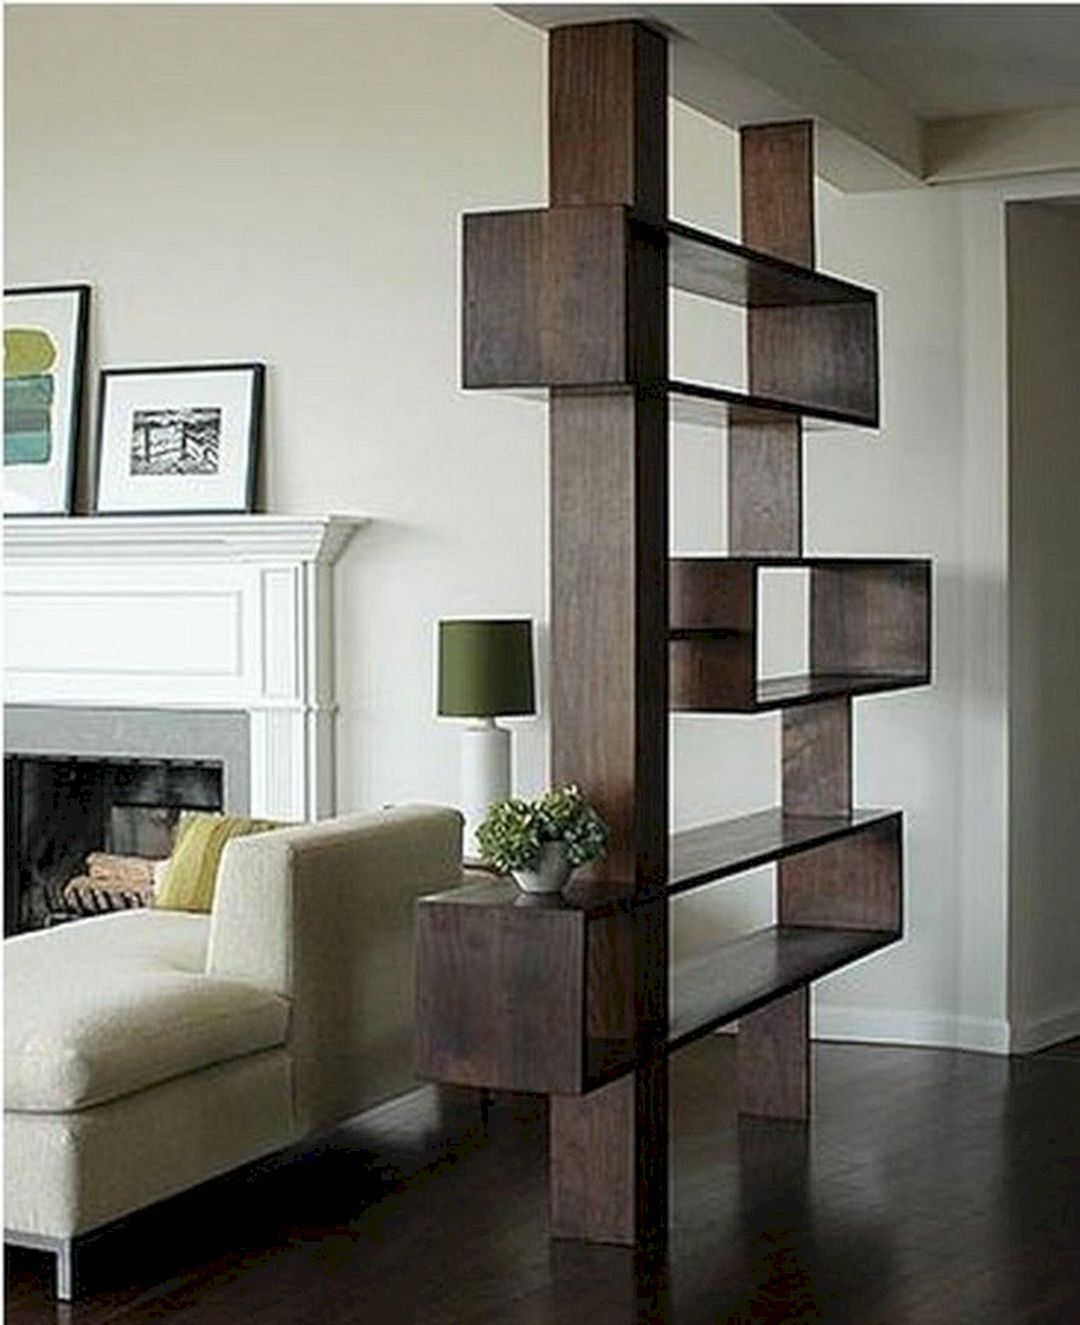 Top 10 Incredible Room Divider Design Ideas You Have To Know